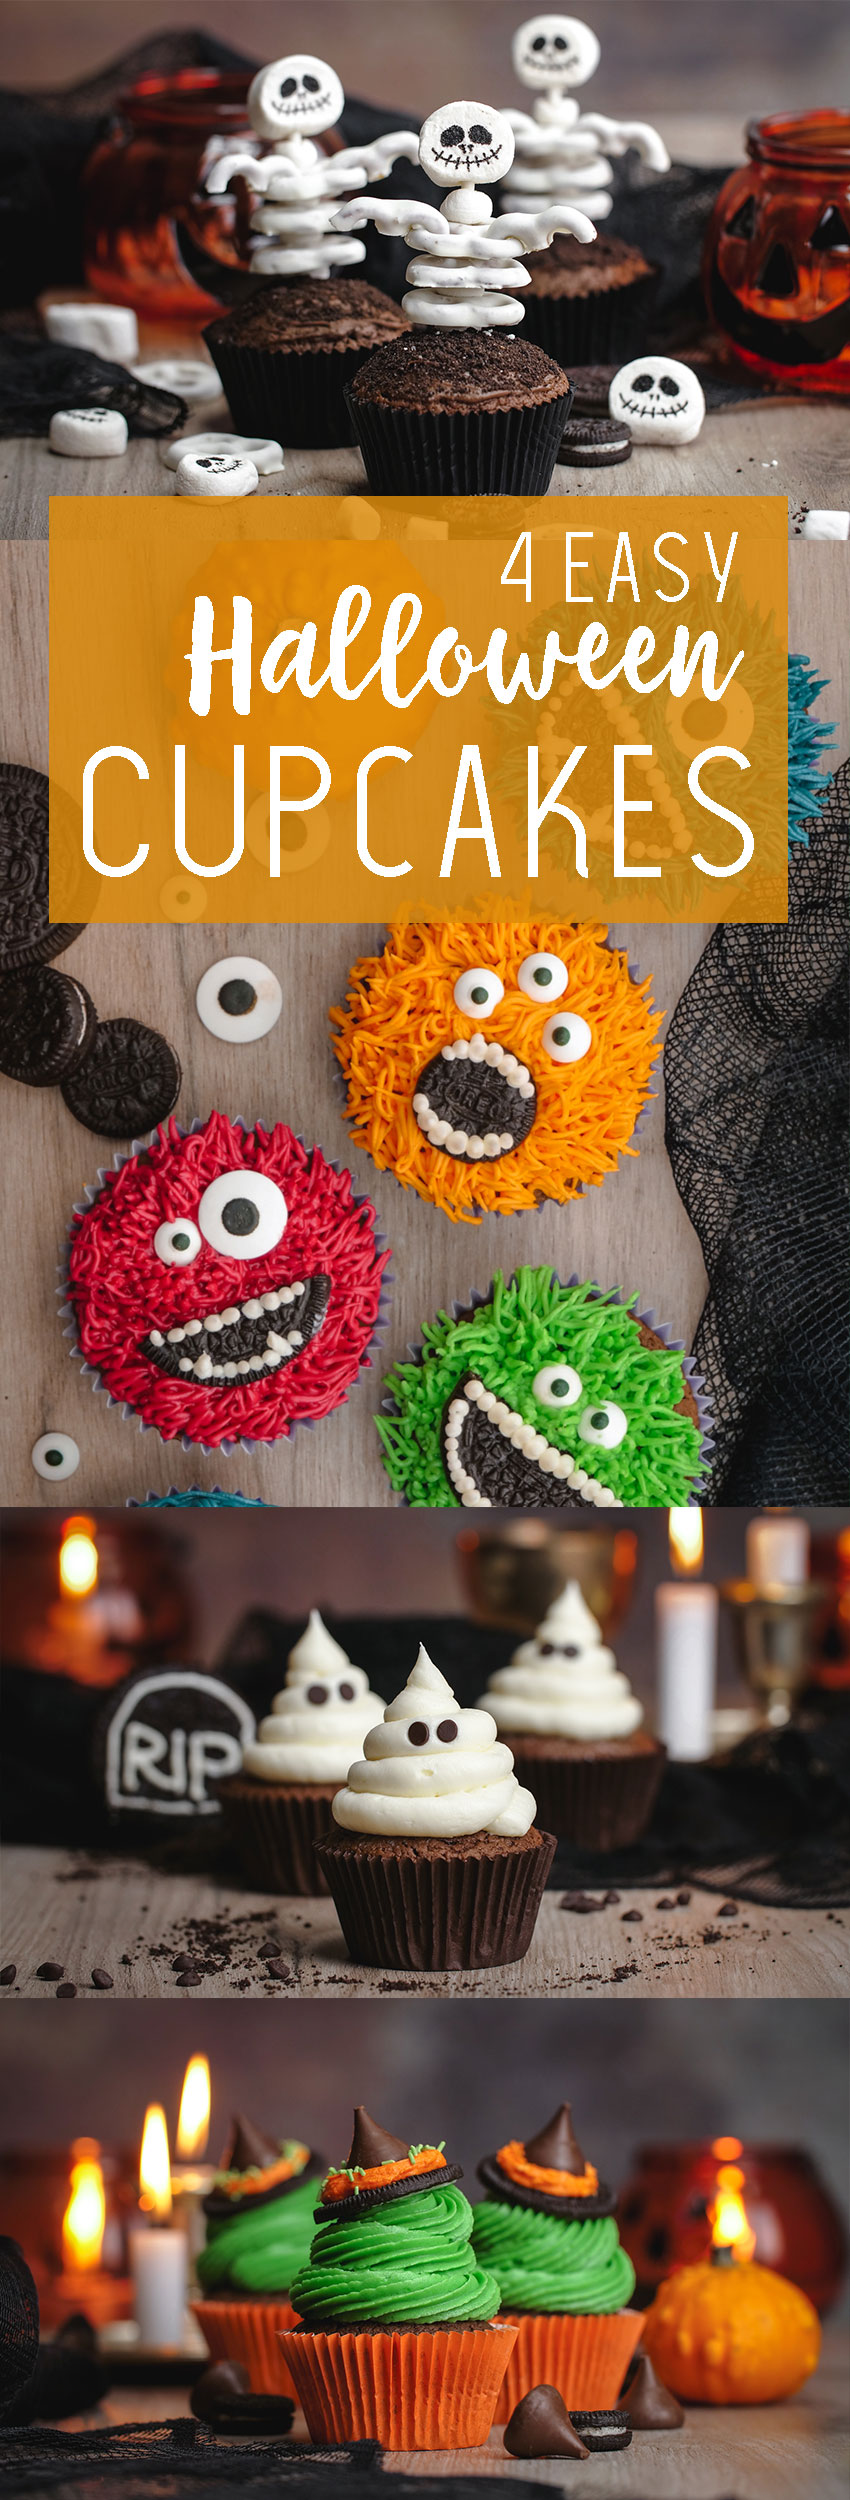 Halloween Cupcakes- 4 easy ideas for super cute Halloween cupcakes